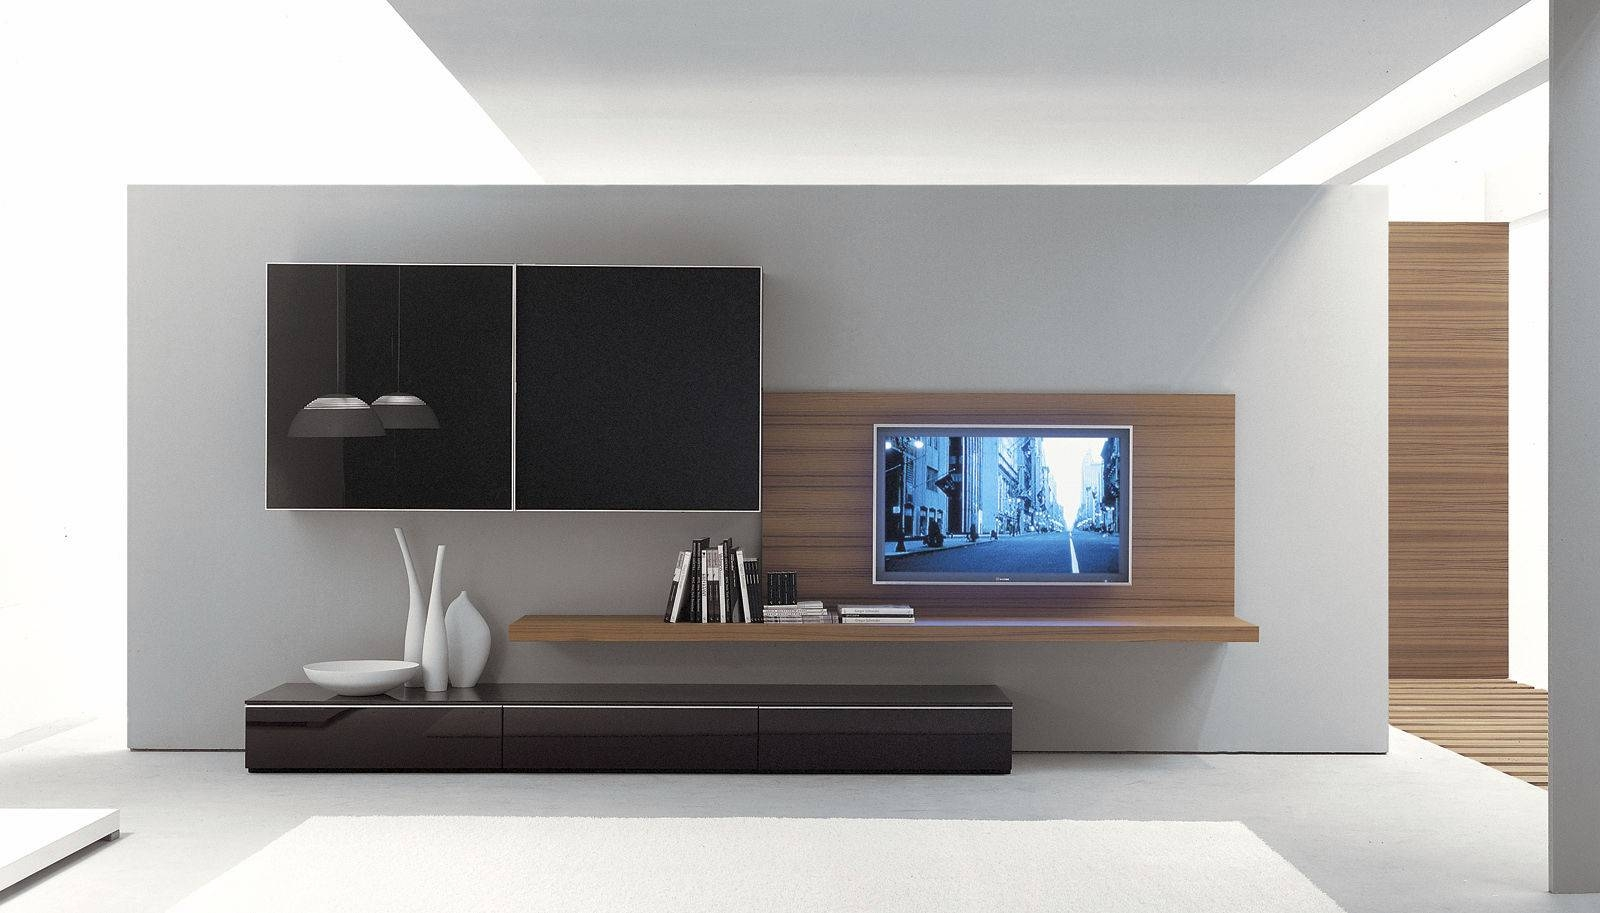 Surprising Modern Contemporary Tv Wall Units 34 For Your Room Within Contemporary Tv Wall Units (View 4 of 15)